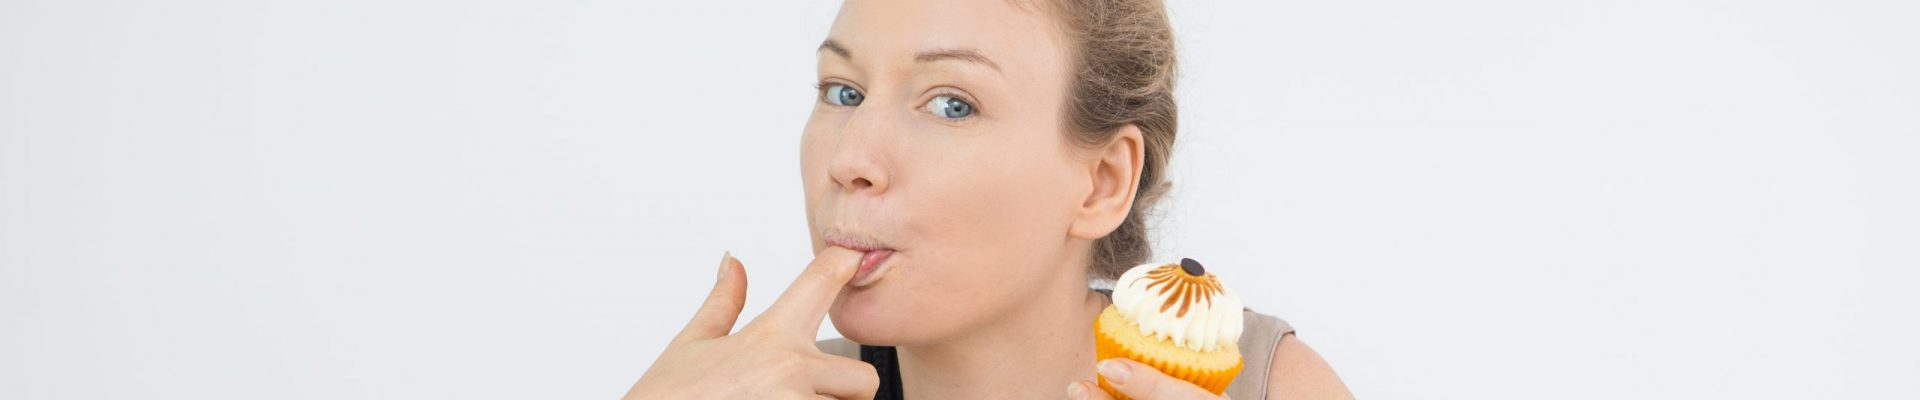 Oro-sensory exposure duration, taste intensity and meal size